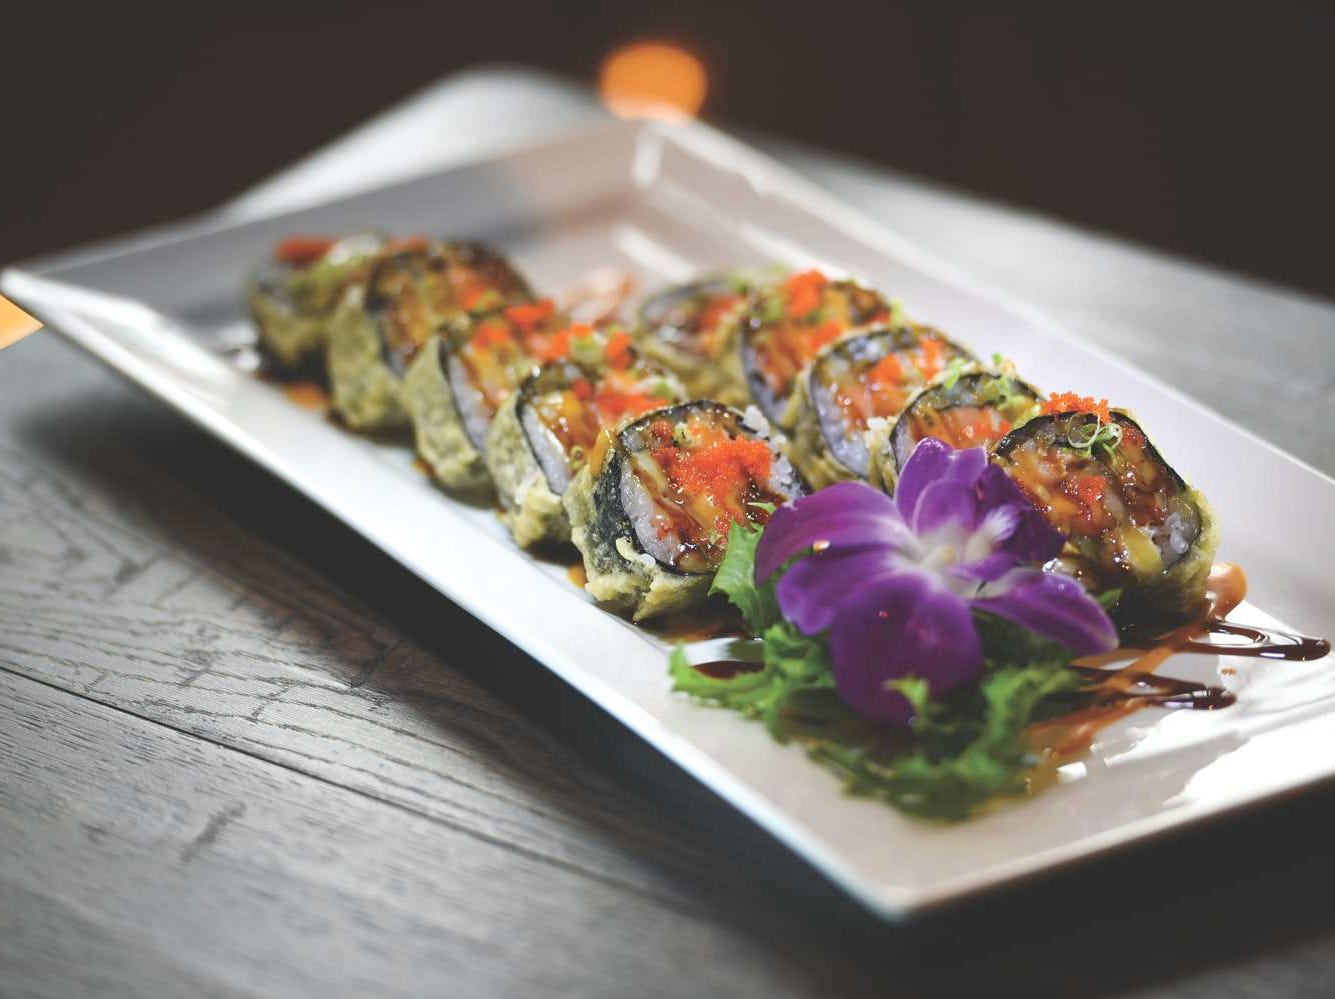 Rock N Roll sushi roll at Dozo Sushi & Asian Cuisine in Livingston